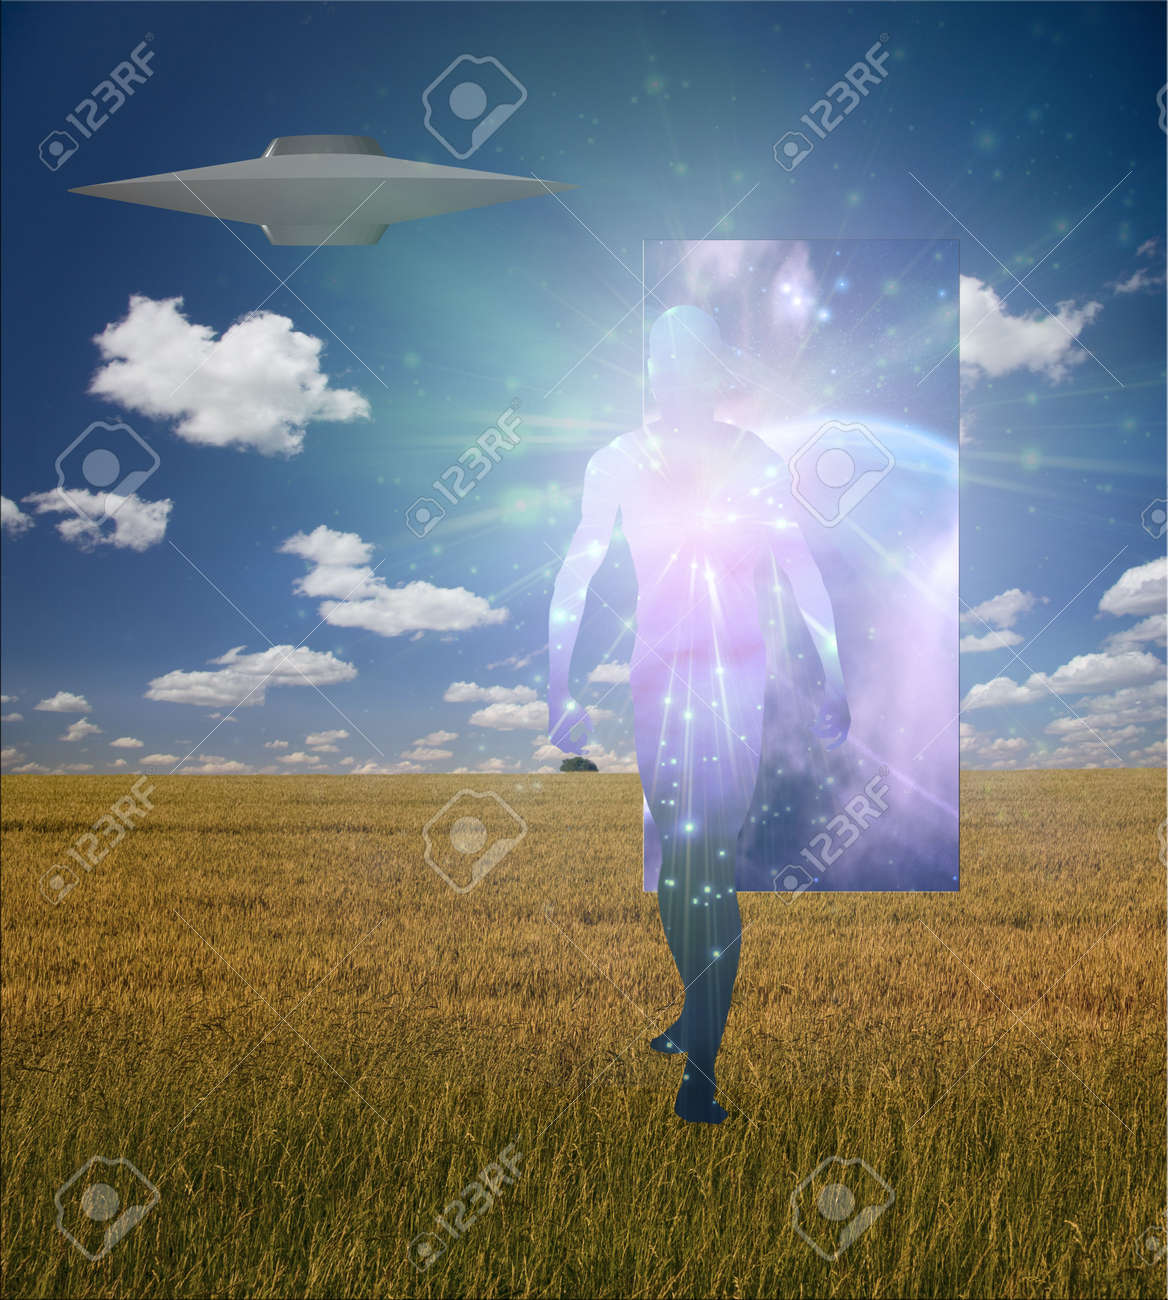 Man Emerges from doorway in landscape accompained by alien craft Stock Photo - 6039403